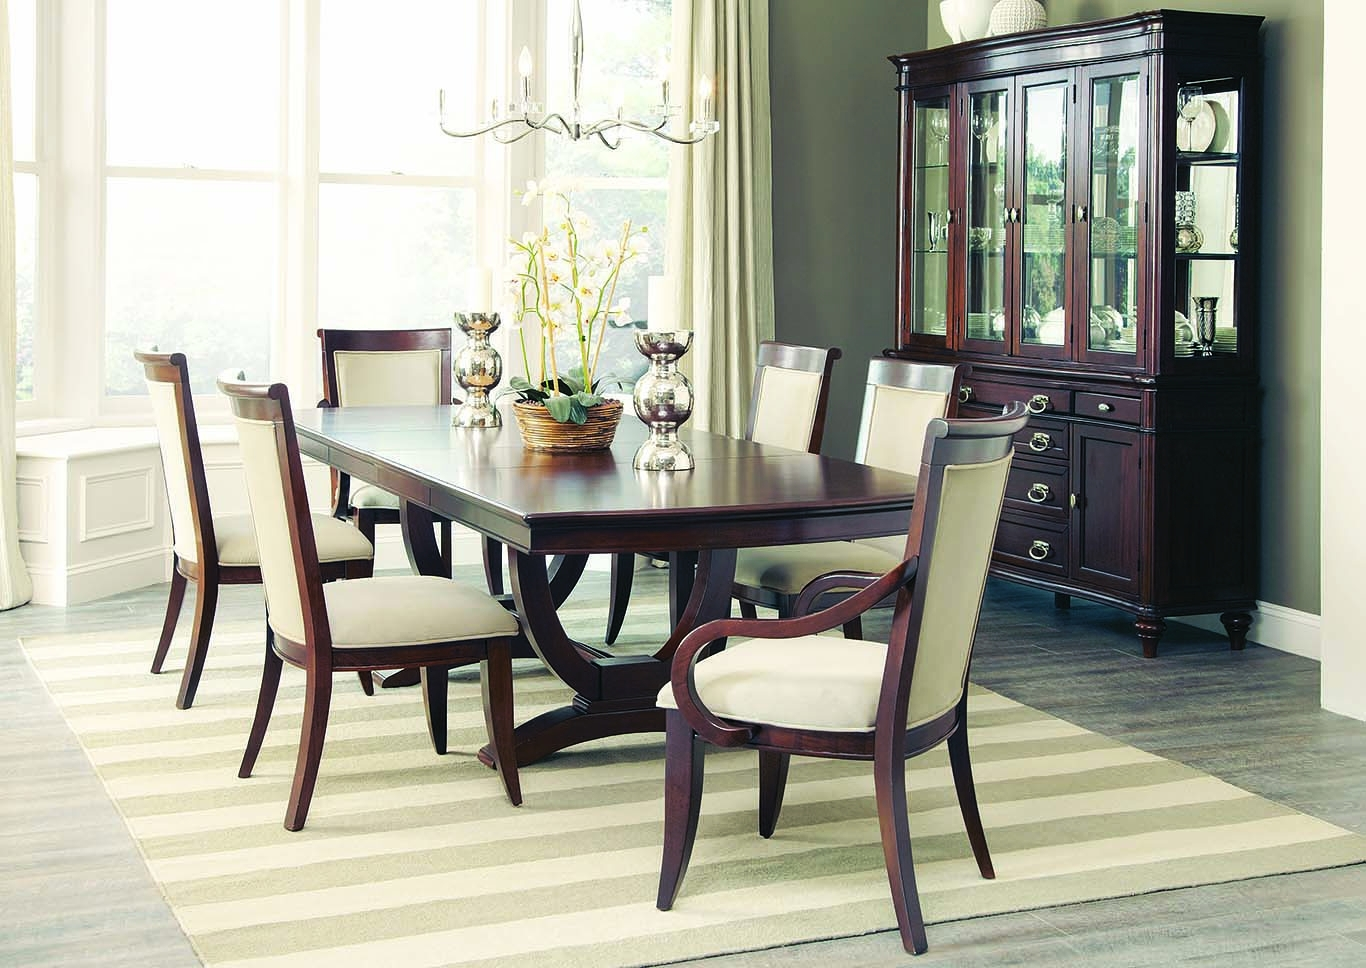 Furniture Expo – Baton Rouge, La Walnut Rectangular Extension Dining Inside Craftsman 7 Piece Rectangle Extension Dining Sets With Side Chairs (View 10 of 25)